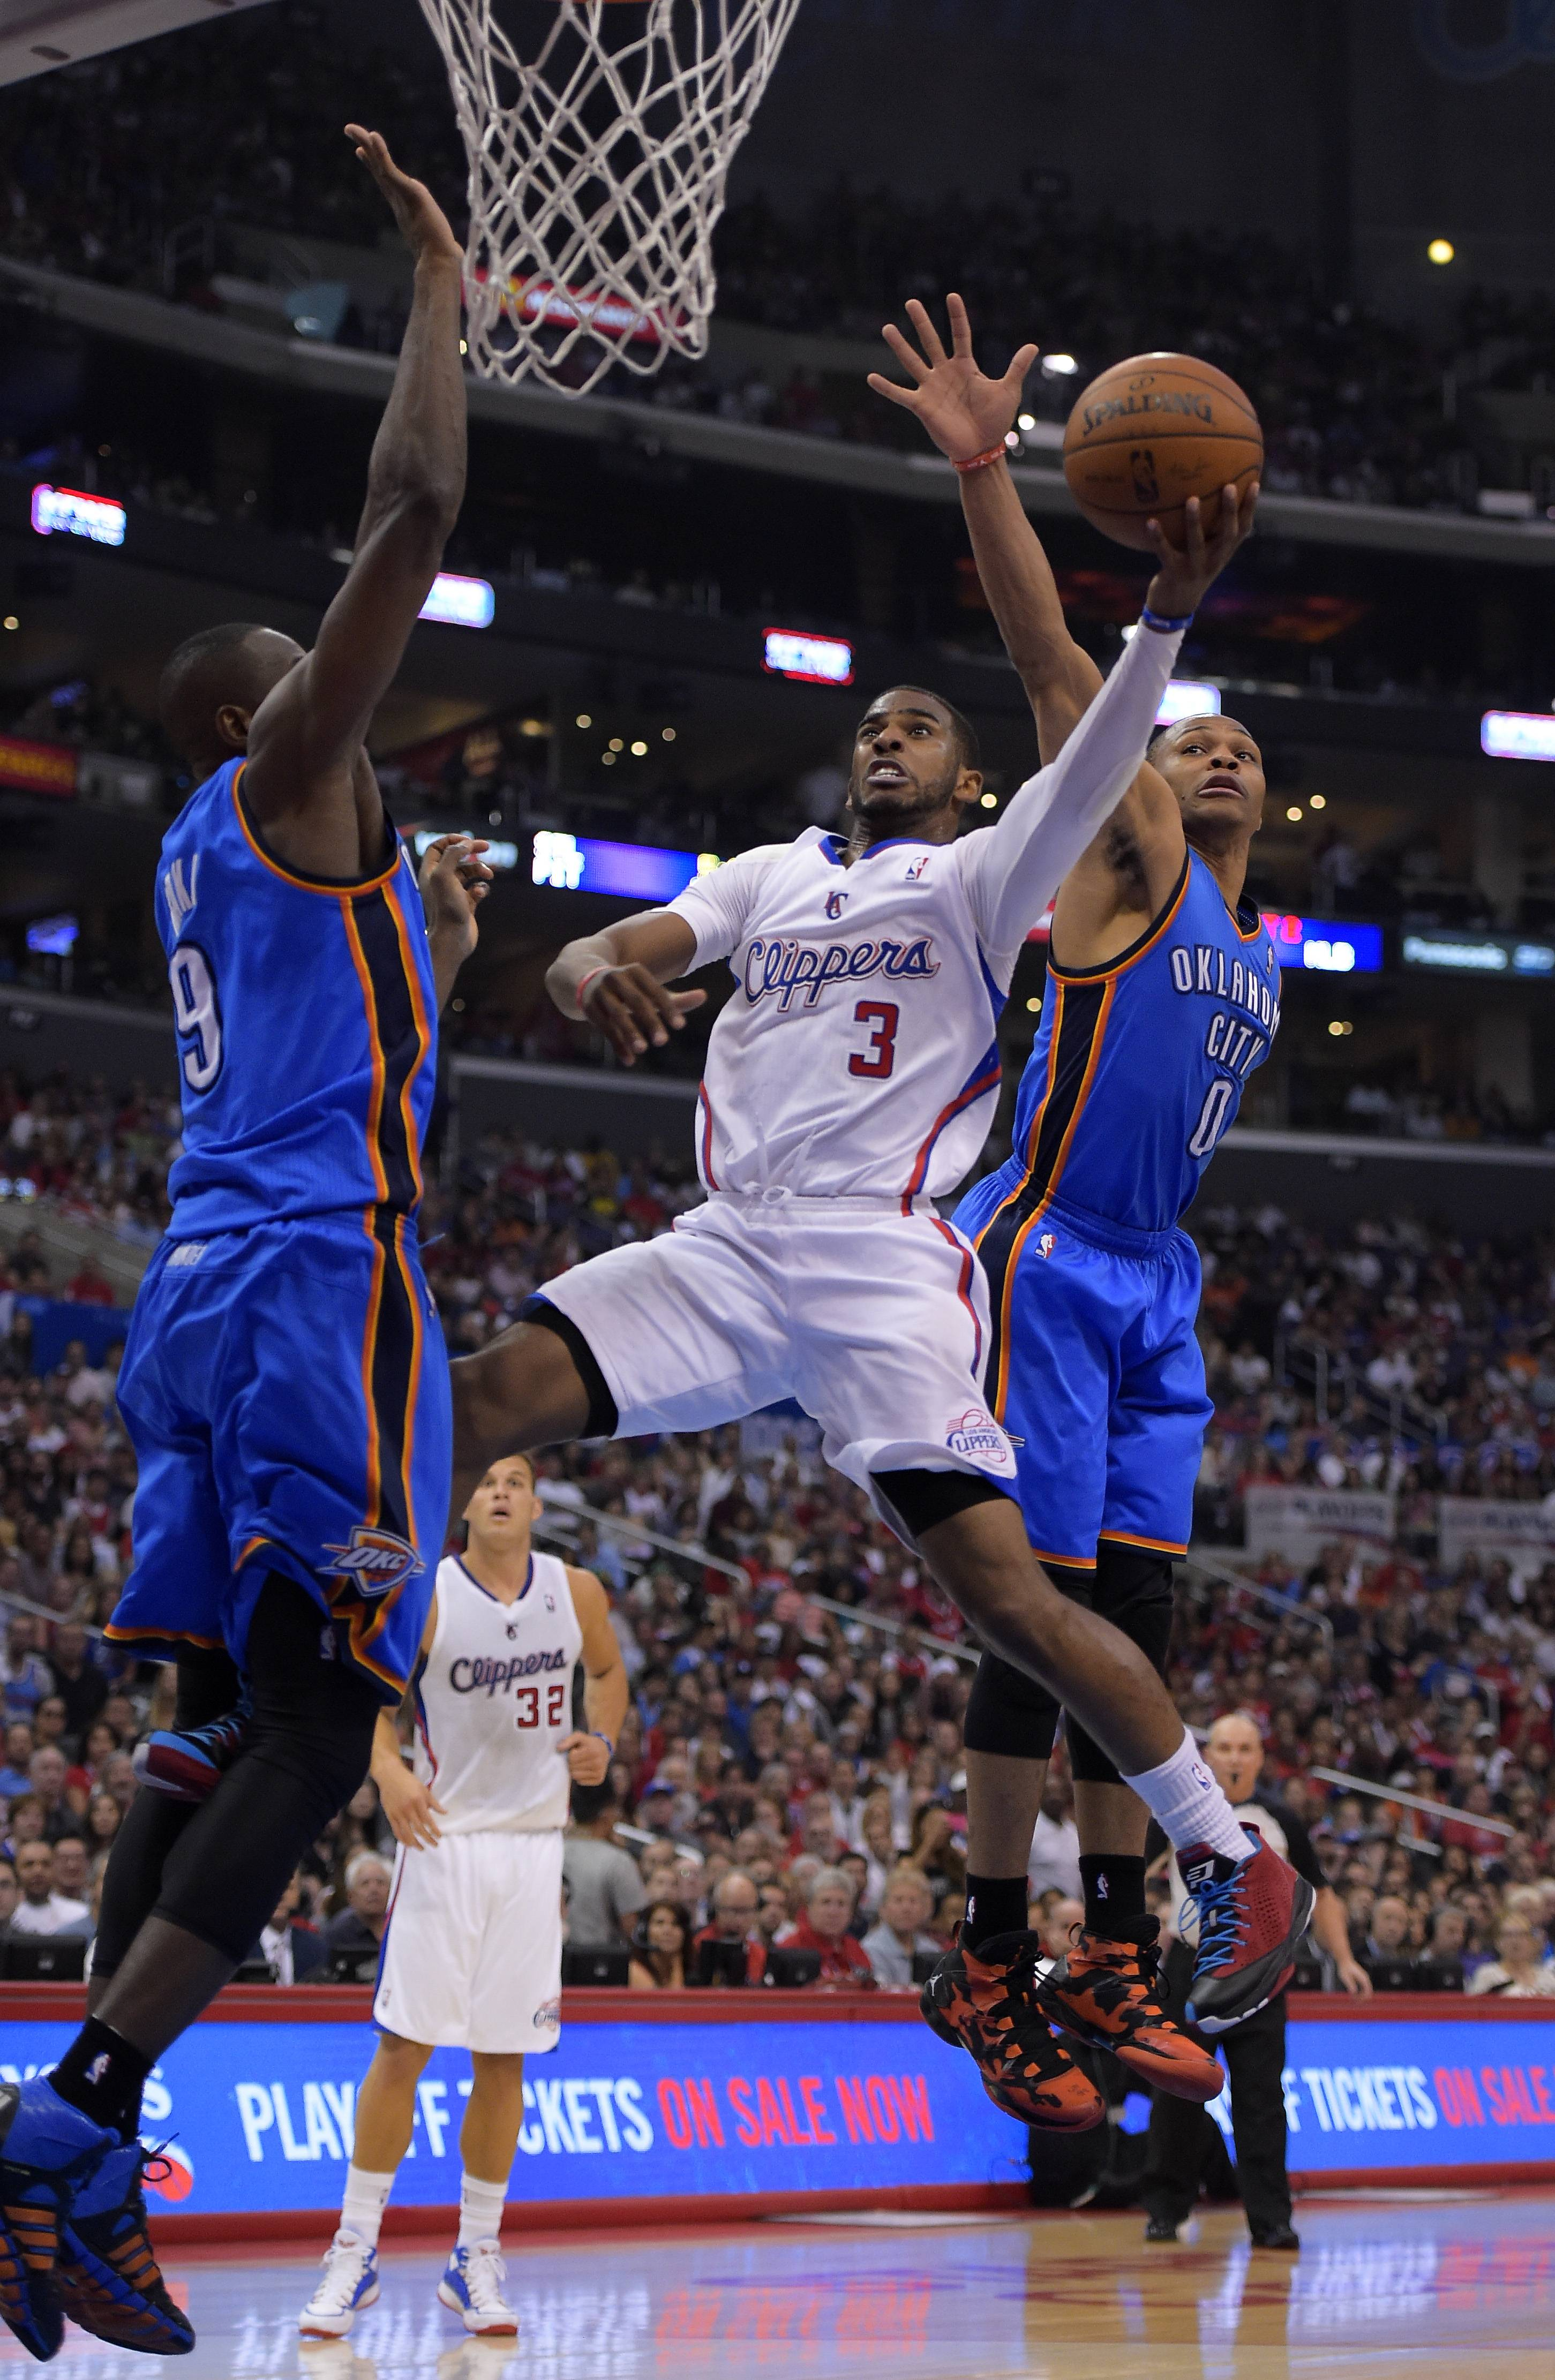 Los Angeles Clippers guard Chris Paul, center, puts up a shot between Oklahoma City Thunder defenders Serge Ibaka, left, of Congo, and Russell Westbrook in the first half of Game 4 of the Western Conference semifinal NBA basketball playoff series, Sunday, May 11, 2014, in Los Angeles.